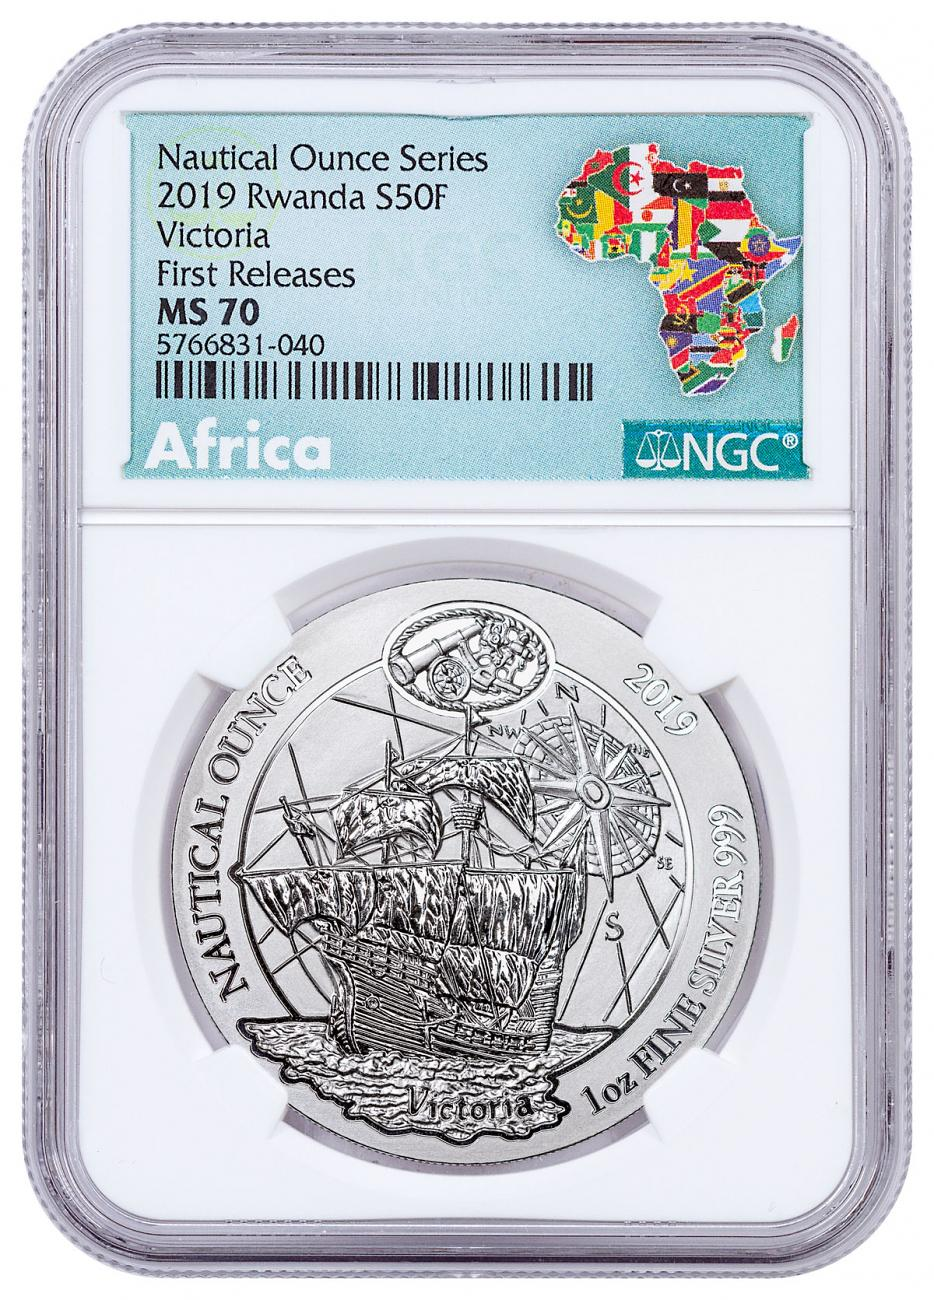 2019 Rwanda Nautical Ounces - 500th Anniversary of Victoria 1 oz Silver RWF Franc50 Coin NGC MS70 FR Exclusive Africa Label